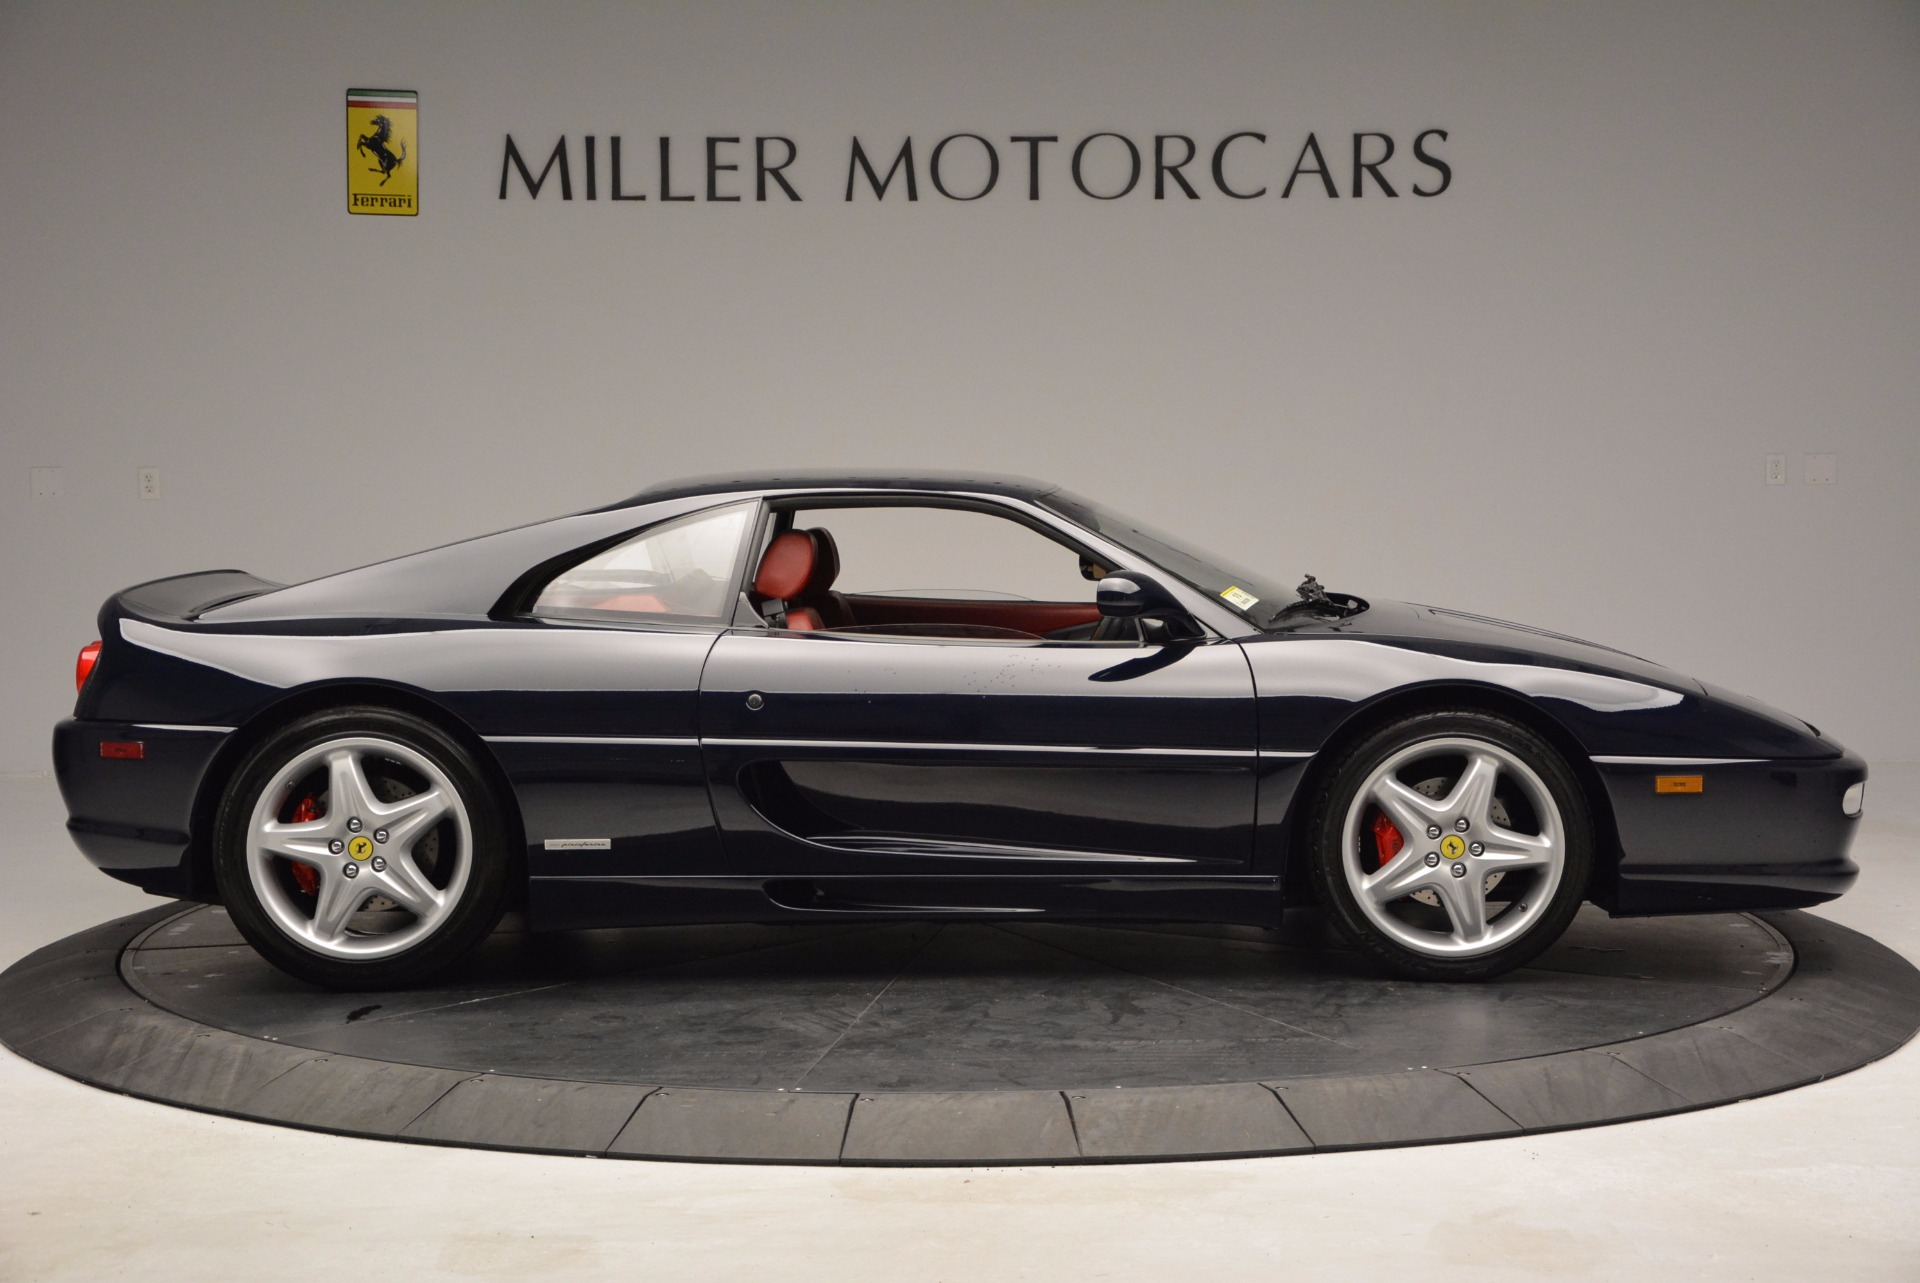 Used 1999 Ferrari 355 Berlinetta For Sale In Westport, CT 855_p10